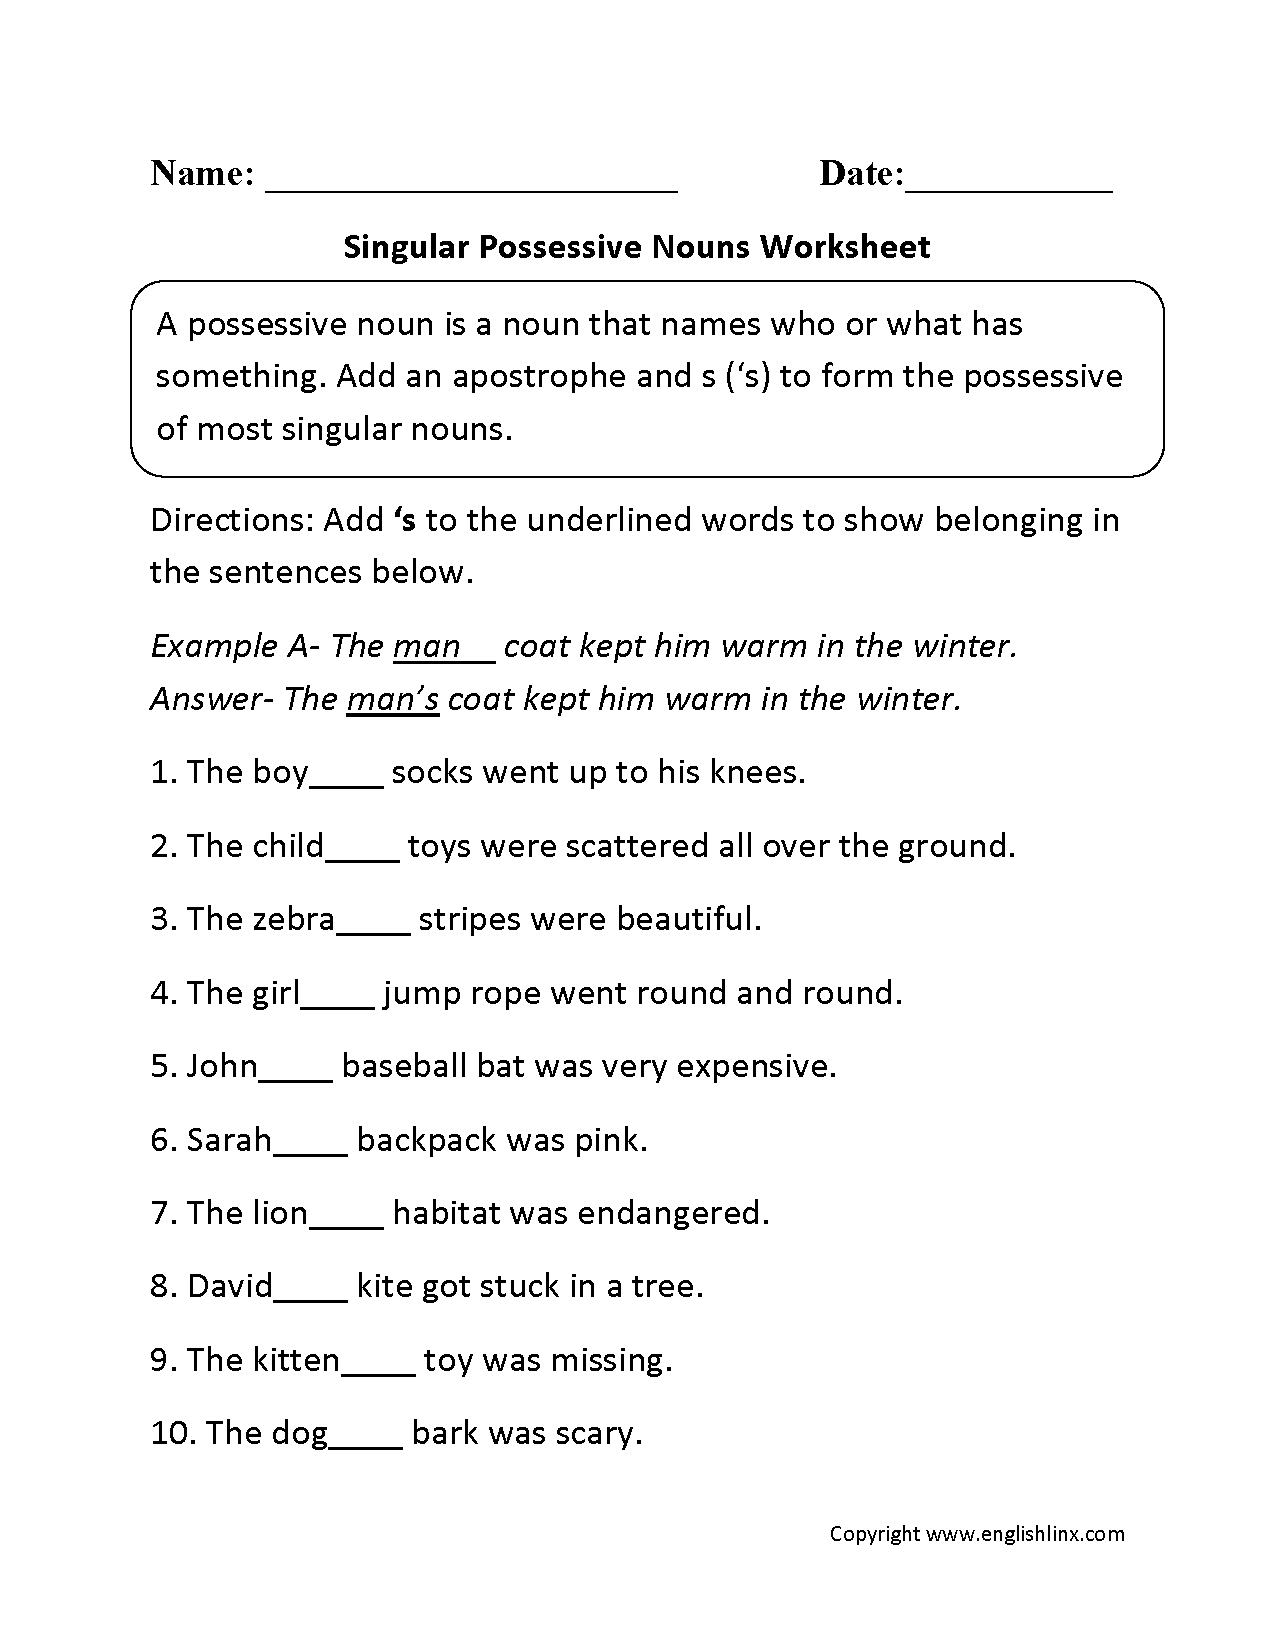 Possessive Nouns Worksheets : Singular Possessive Nouns ...